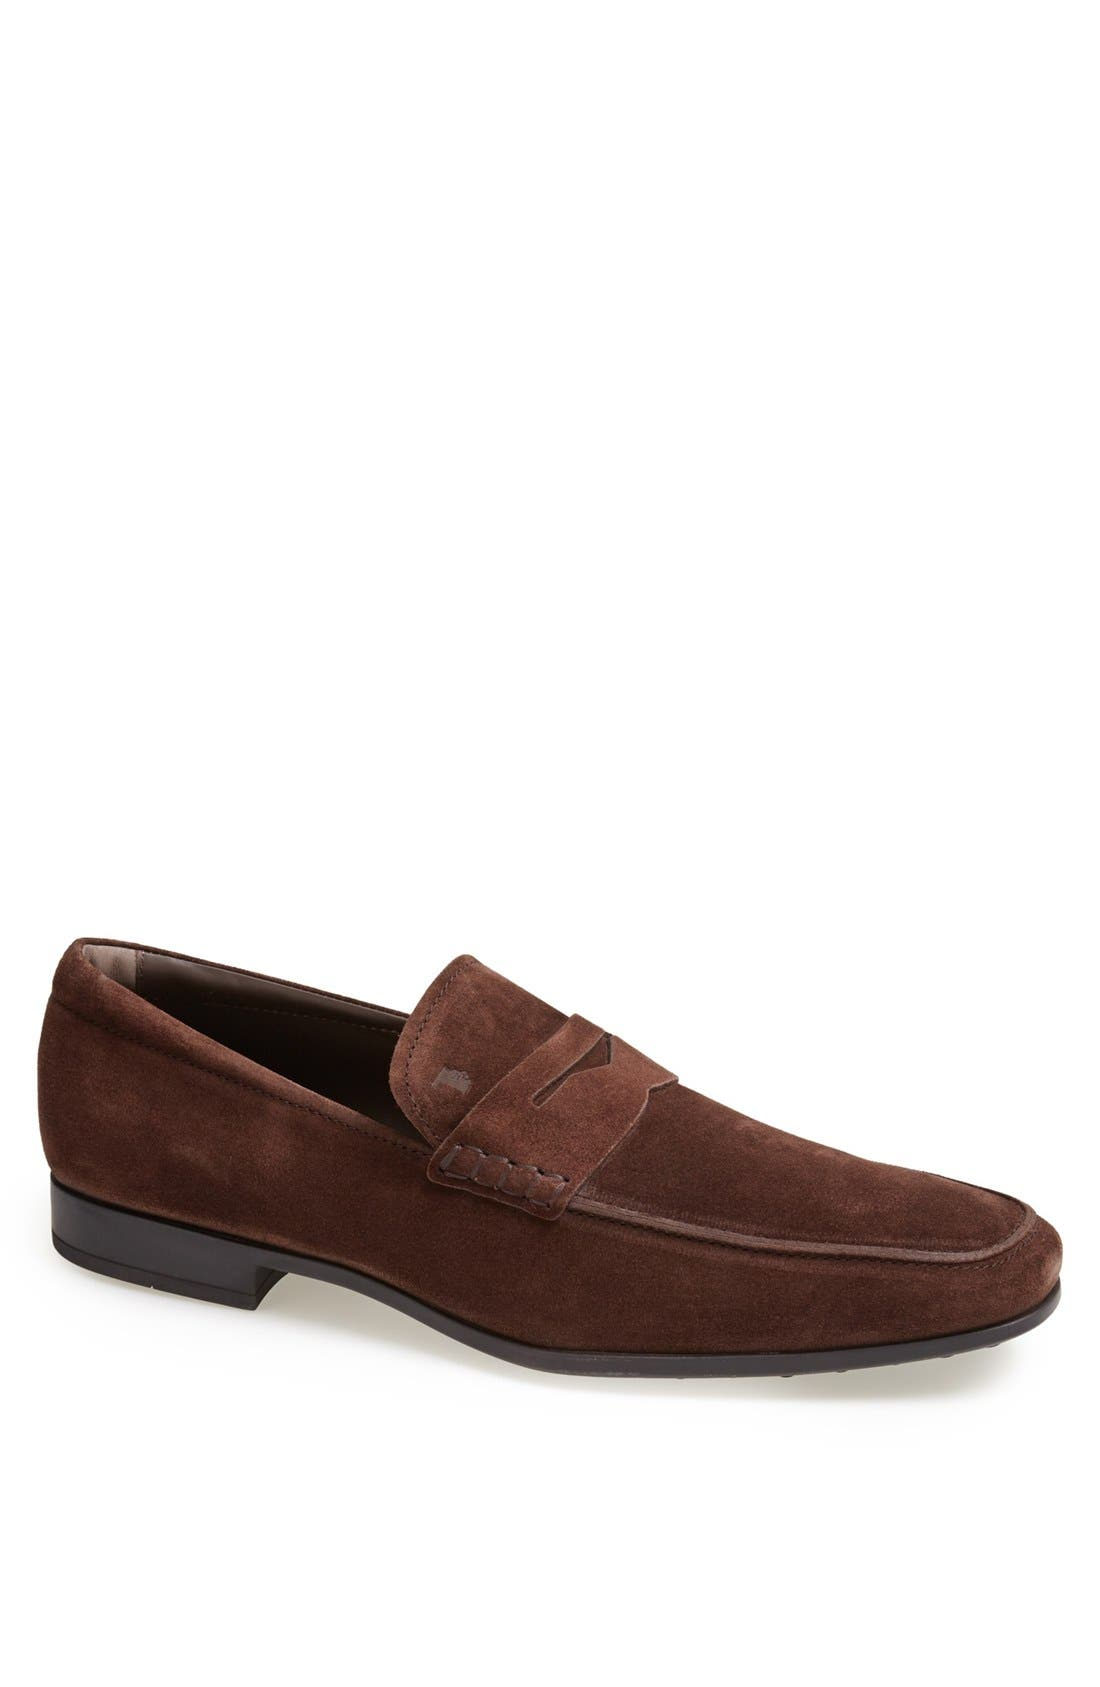 Alternate Image 1 Selected - Tod's 'Gomma' Suede Penny Loafer